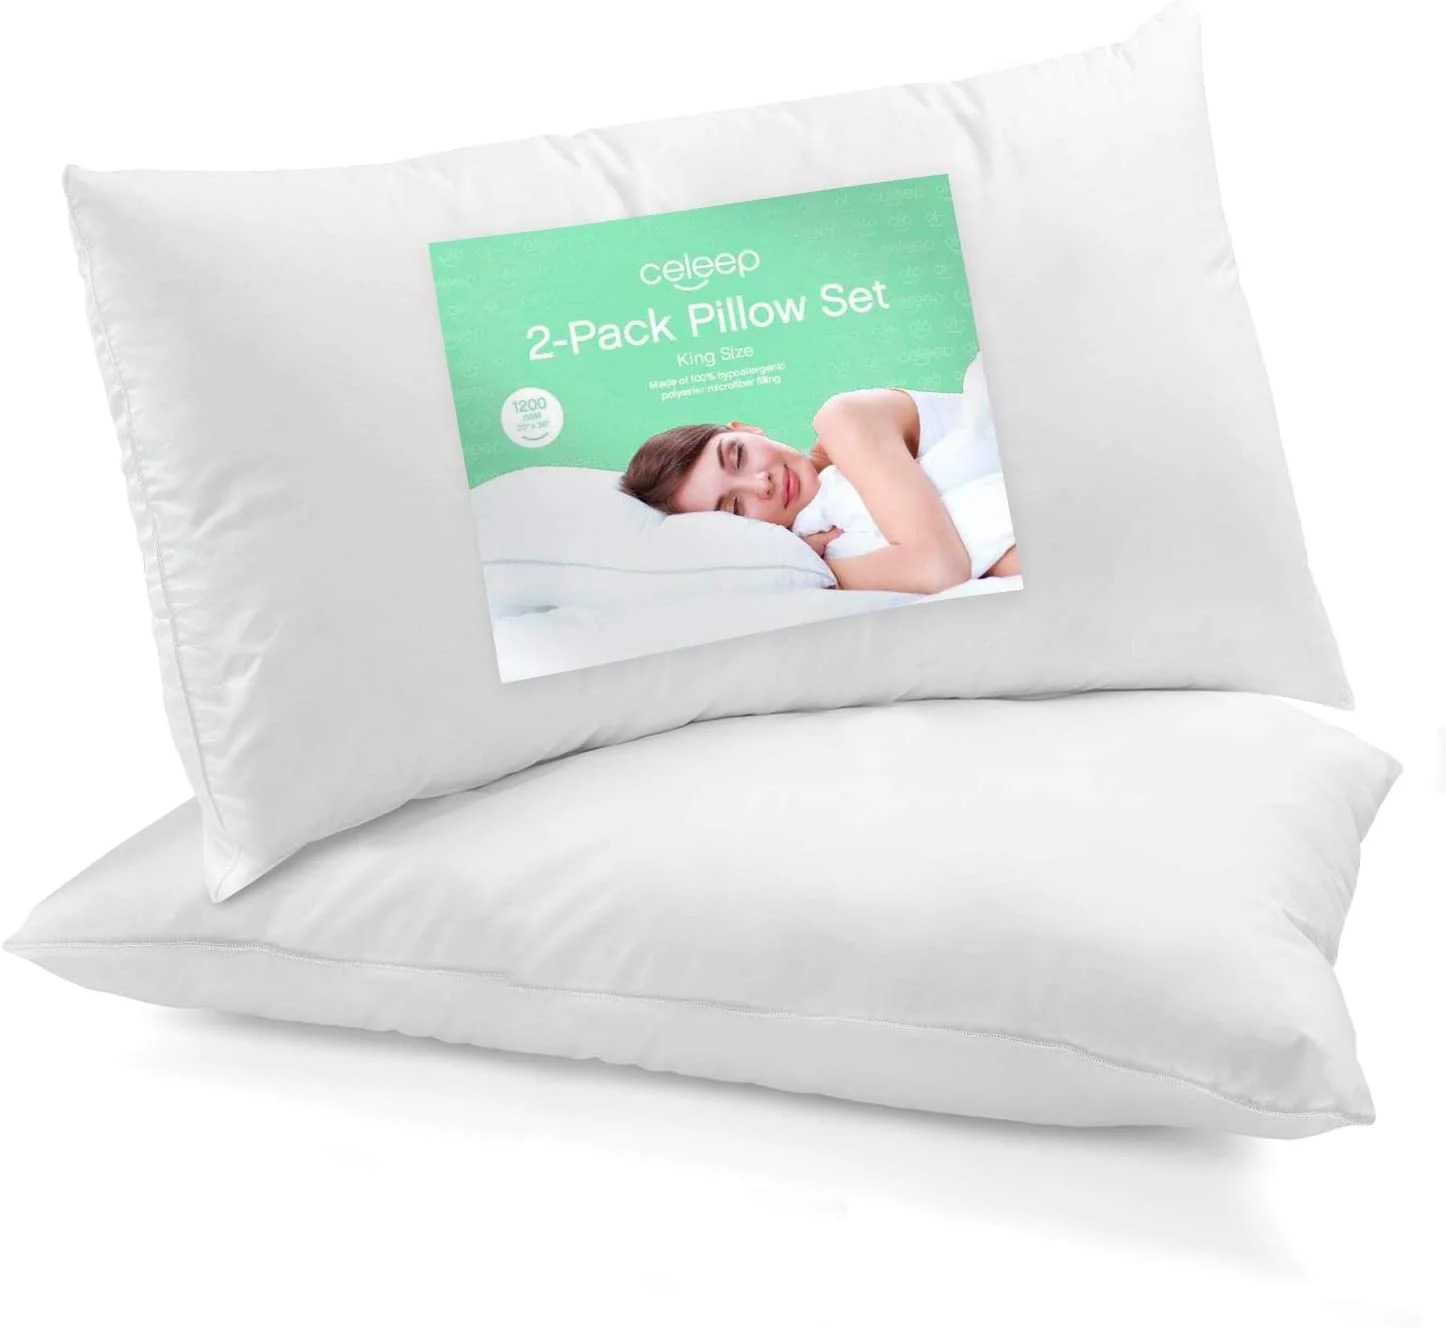 celeep 2 pack oversized queen bed pillows 20 x 30 inches 1050gsm ultra soft sand washed cover sleeping pillows with lofty microfiber filling